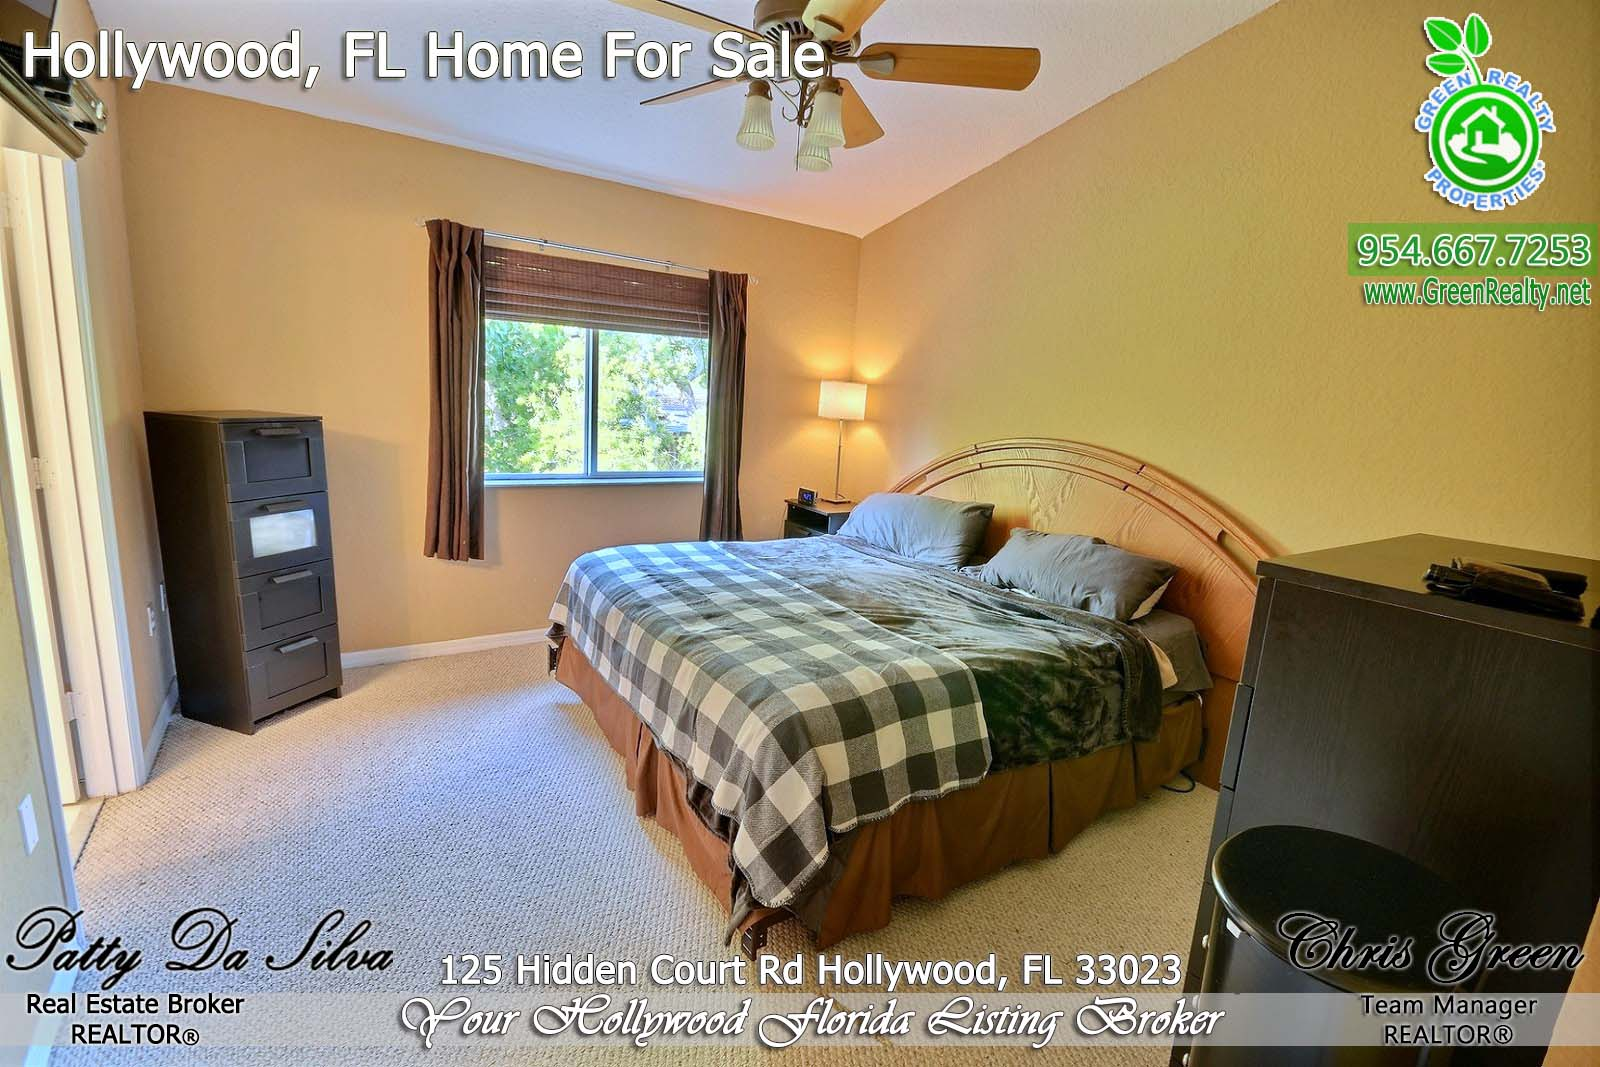 13 Homes For Sale in Hollywood Florida (3)